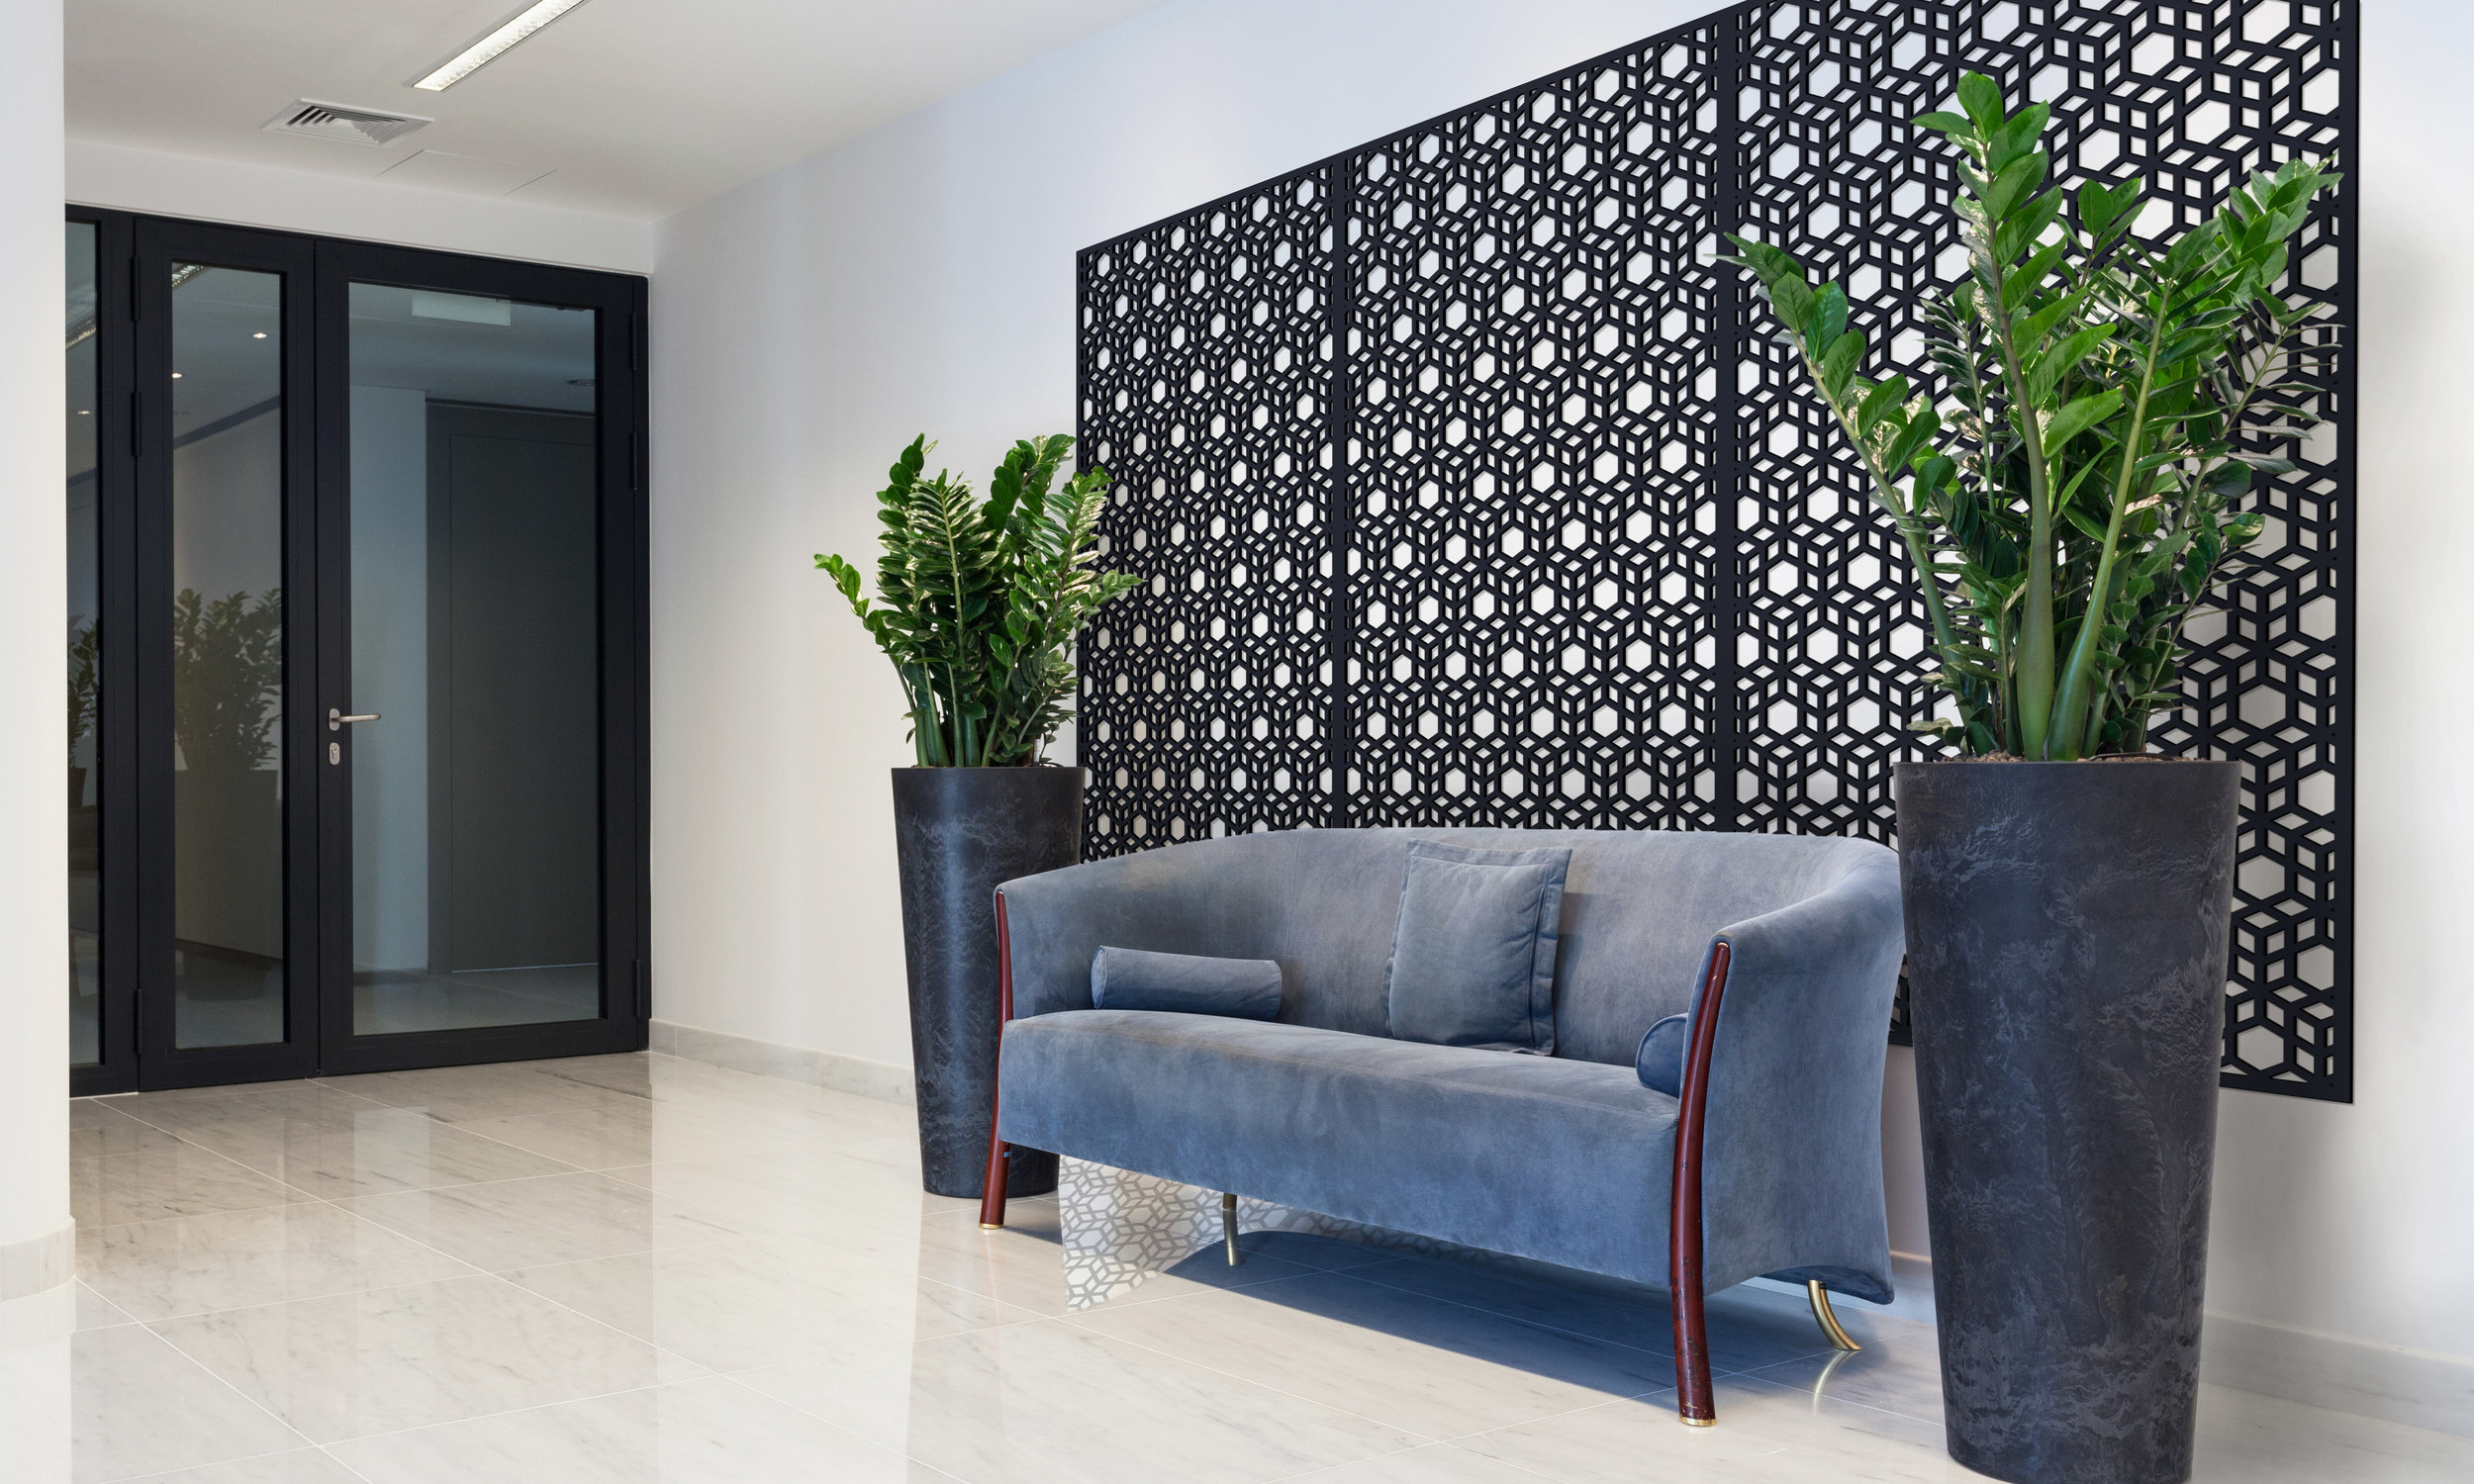 Installation Rendering B   3D Cubes decorative office wall panel - painted